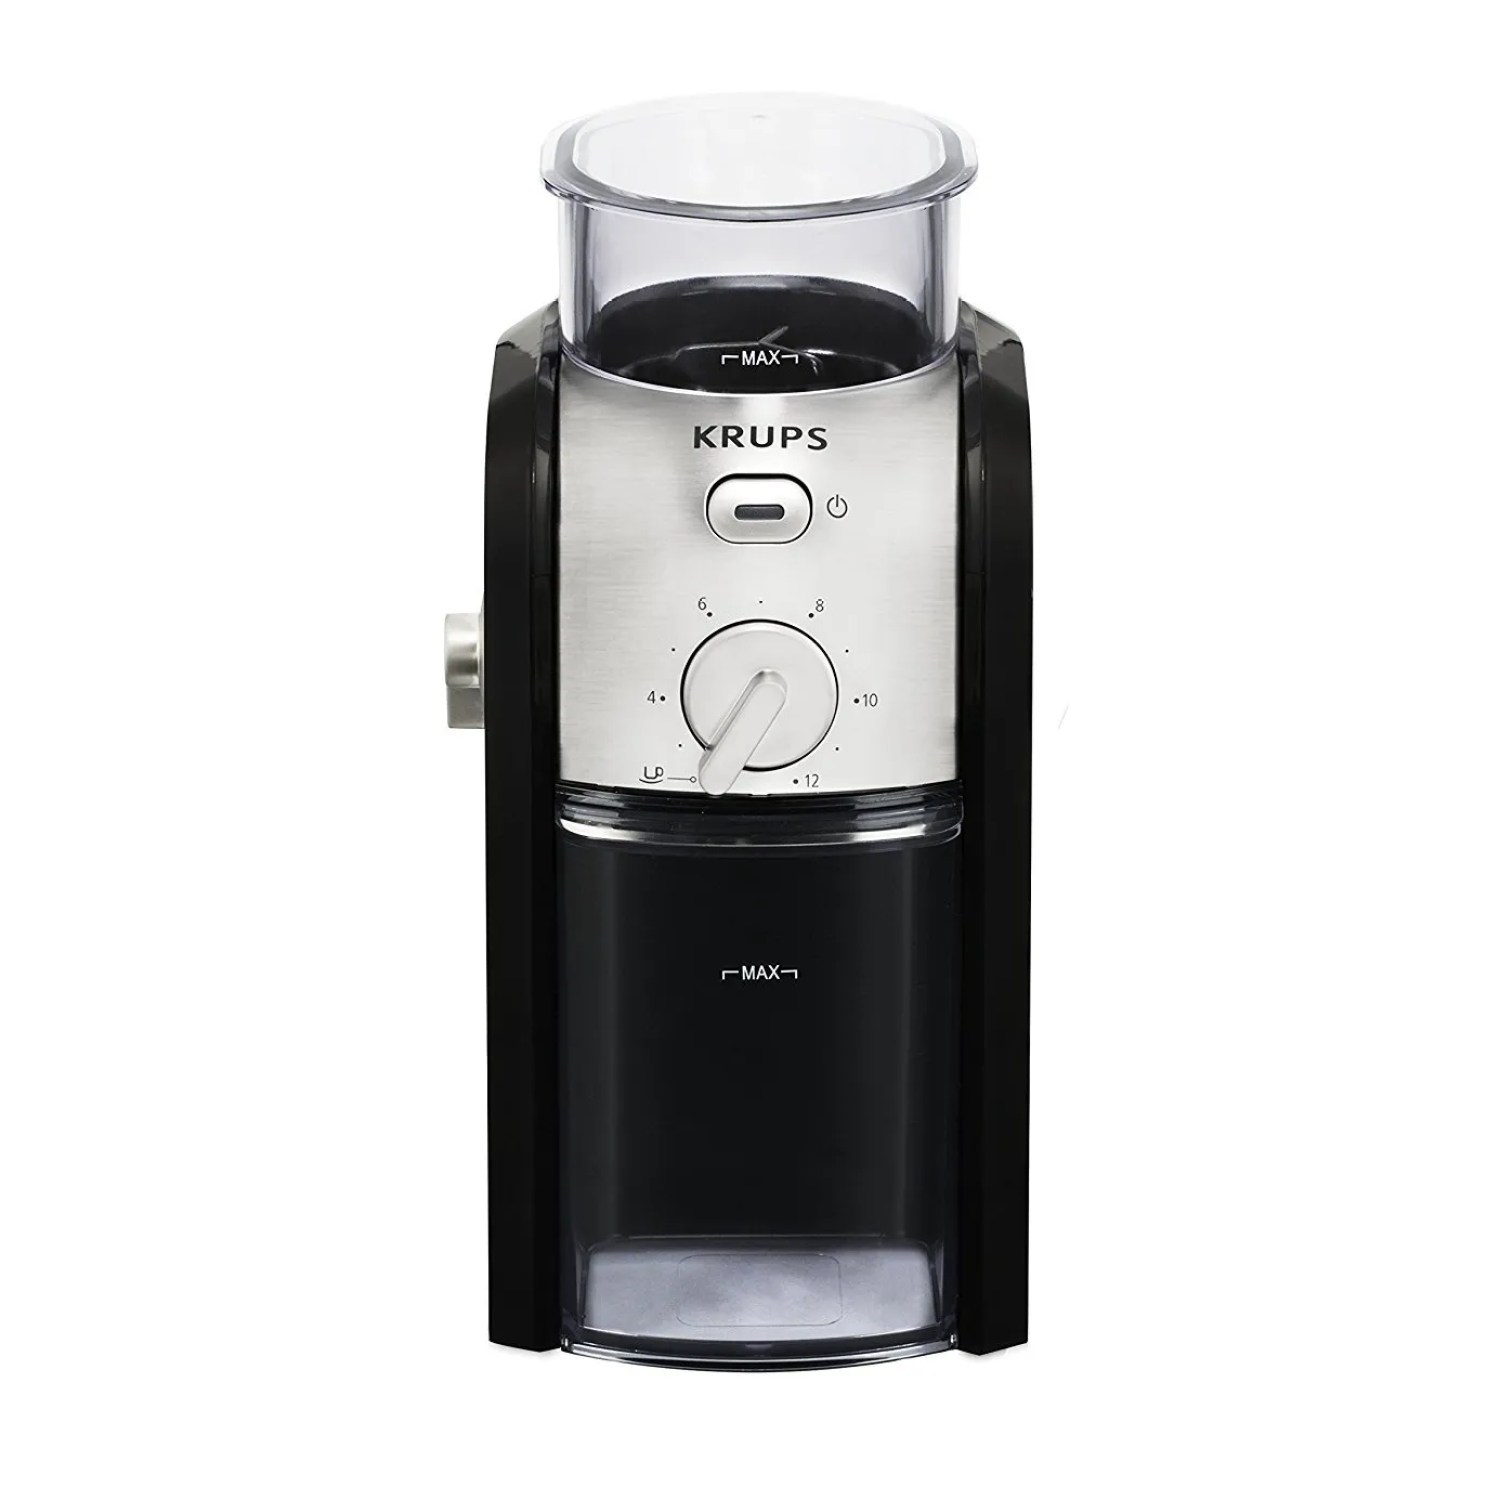 Krups Expert Gvx231 Burr Coffee Grinder Review The Perfect